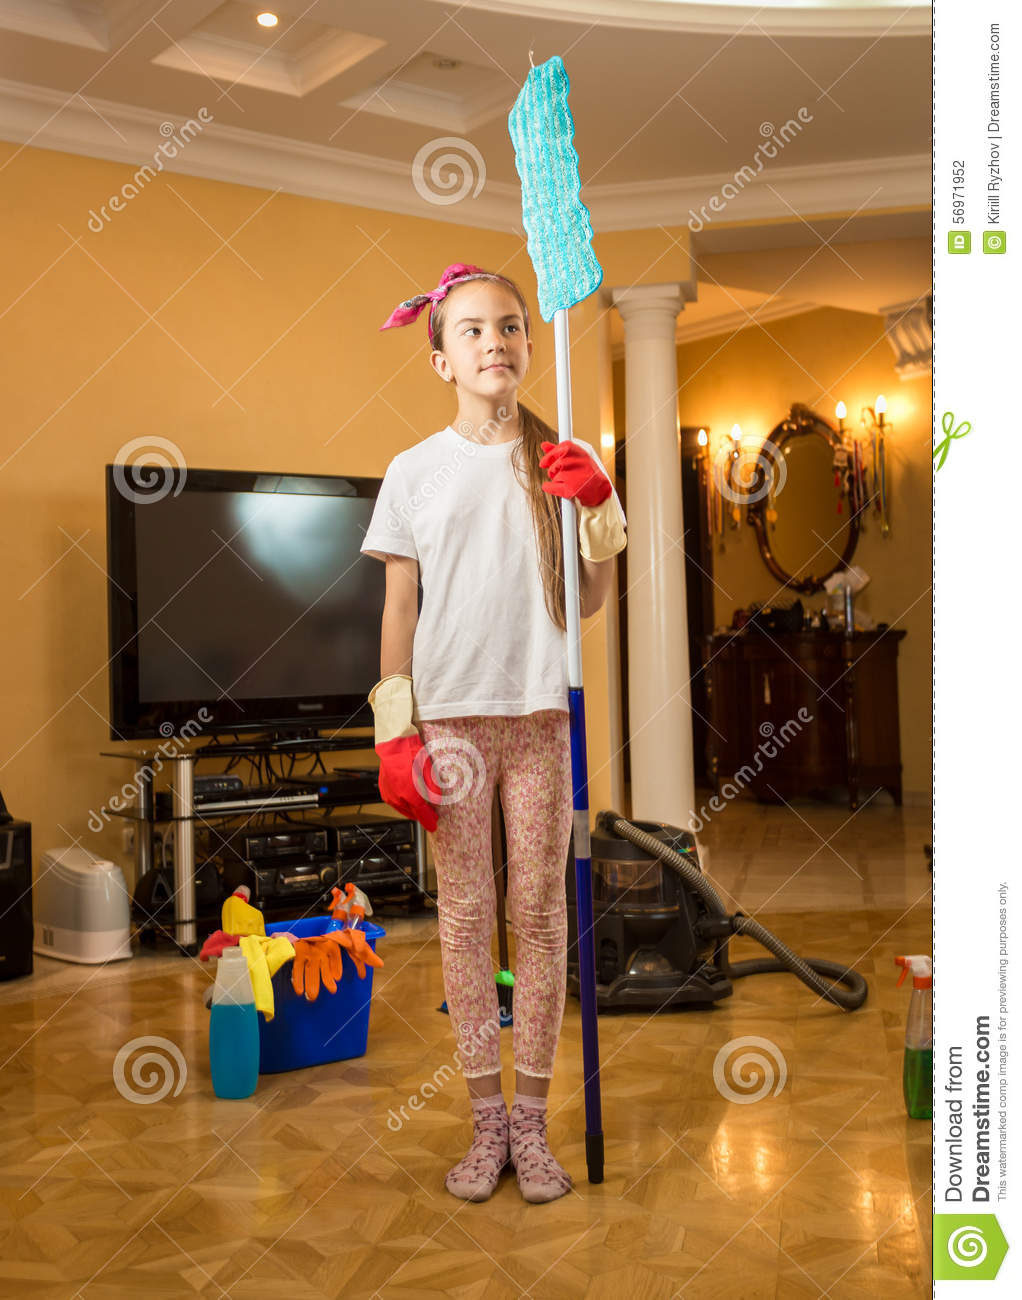 Funny Girl Sweeping The Floor Royalty Free Stock Photo